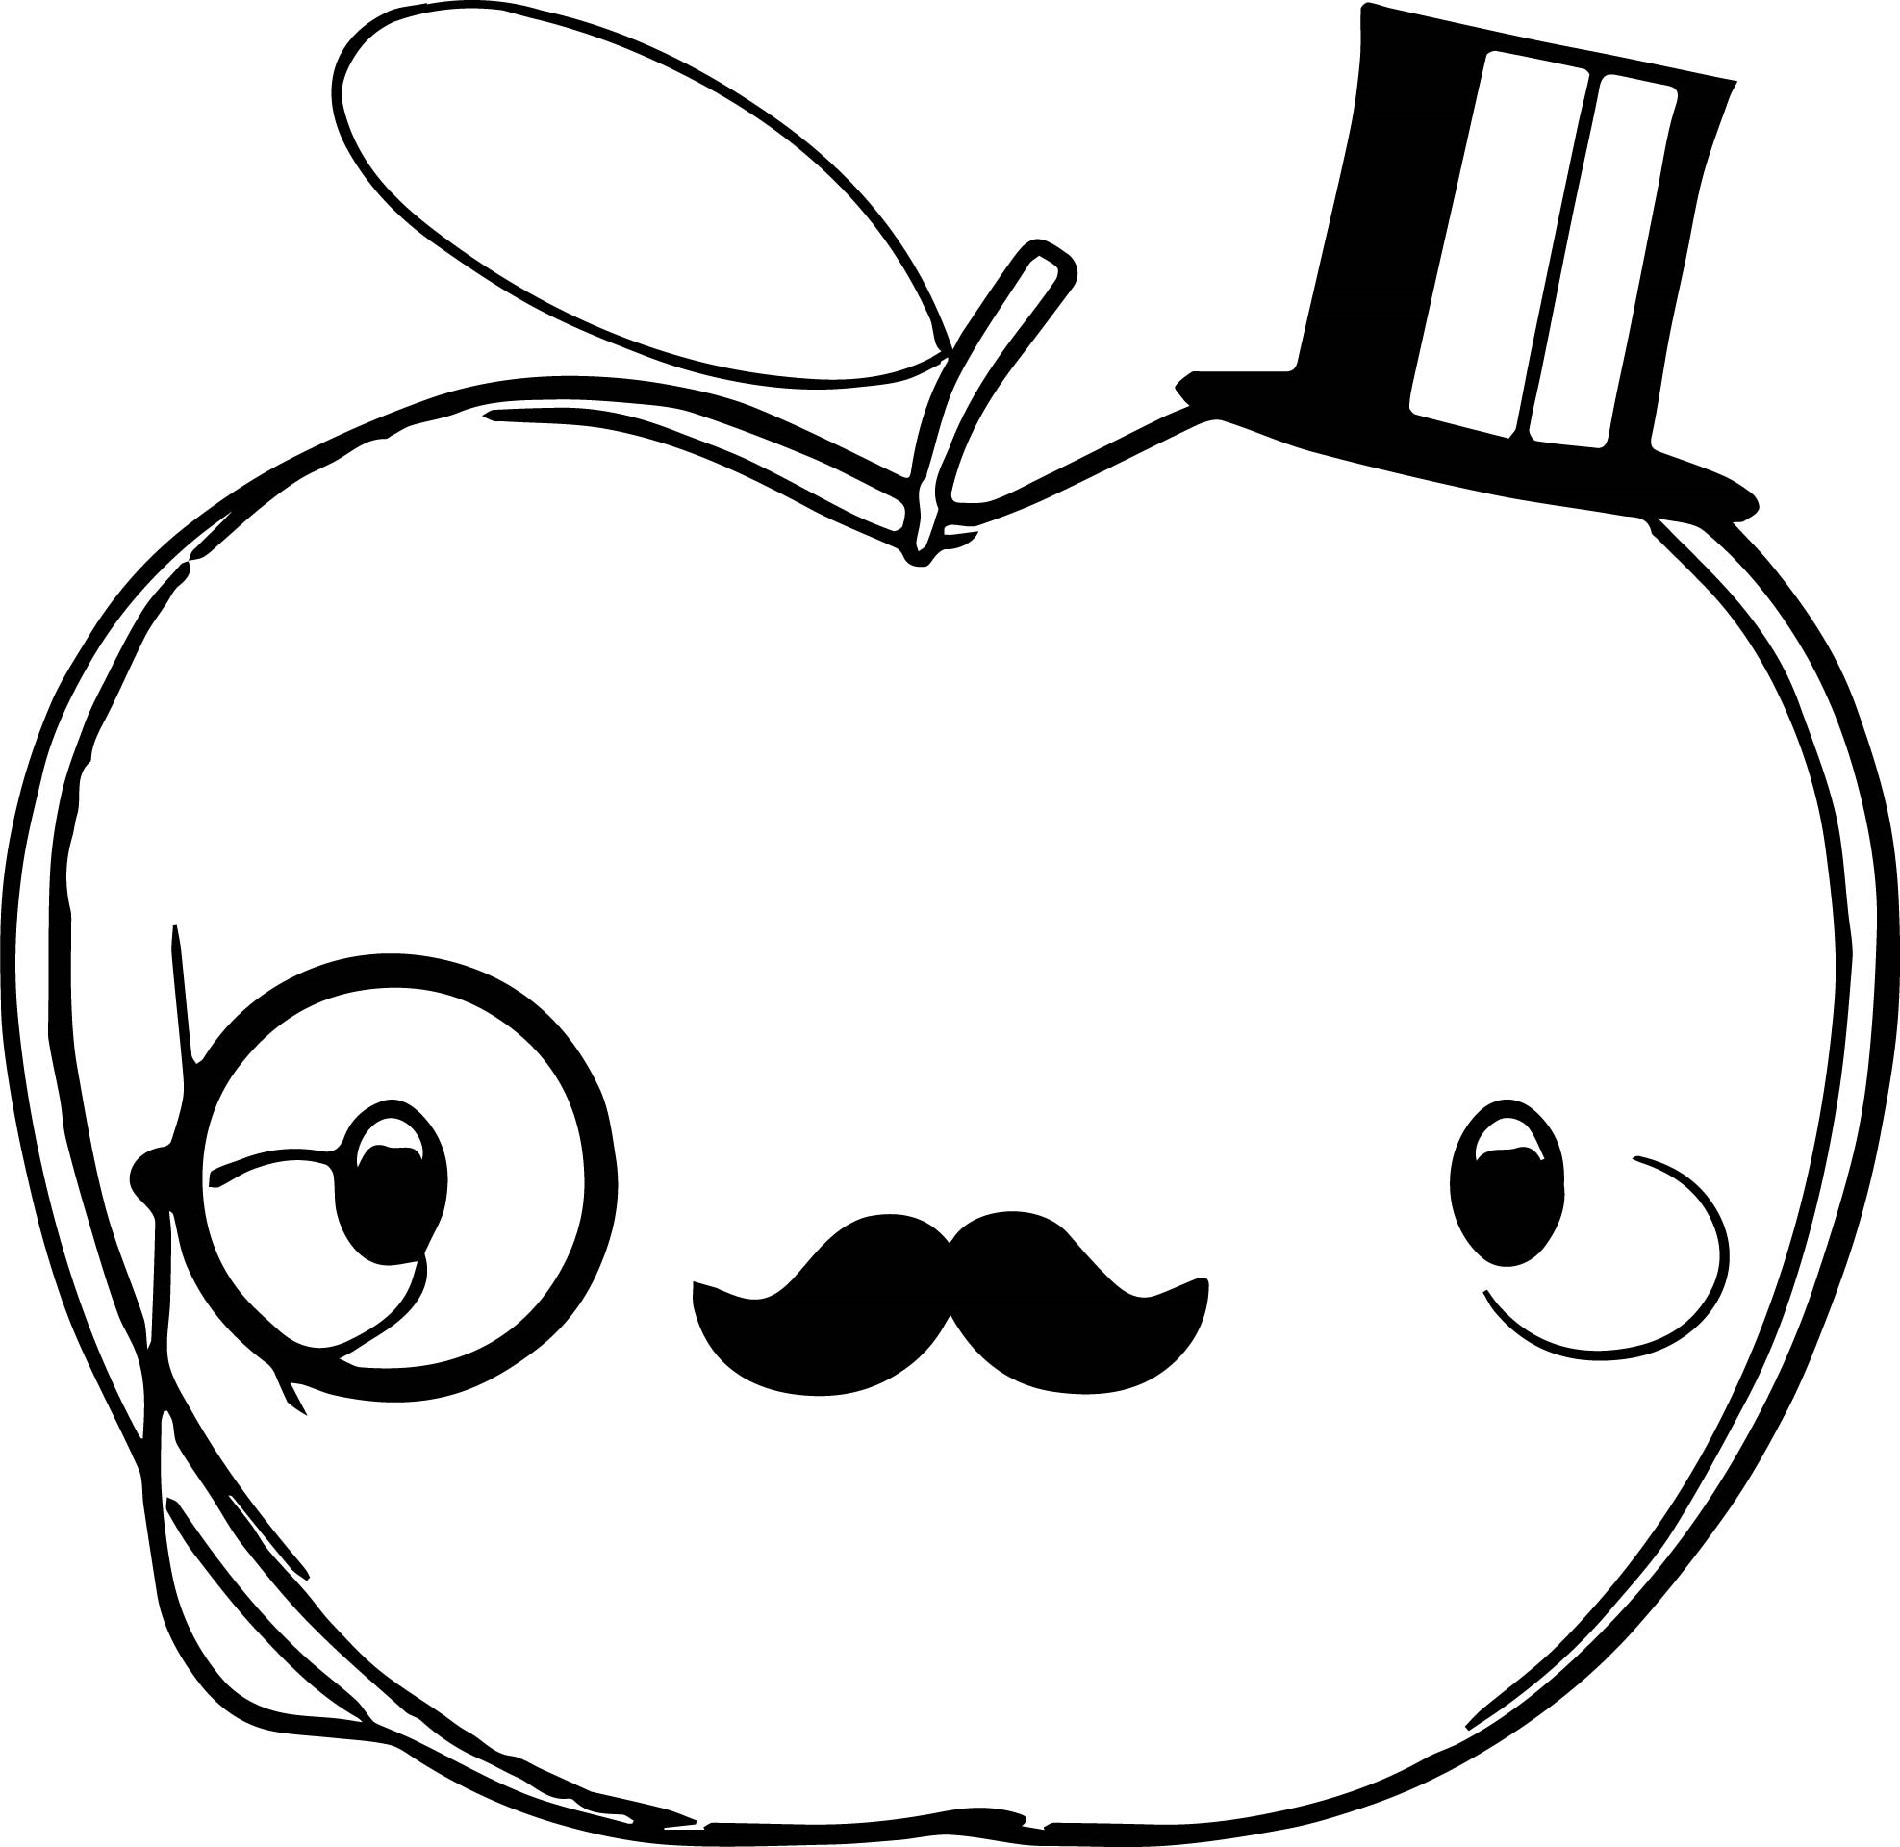 a is for apple coloring page apple coloring pages fruit 101 coloring for is page a apple coloring